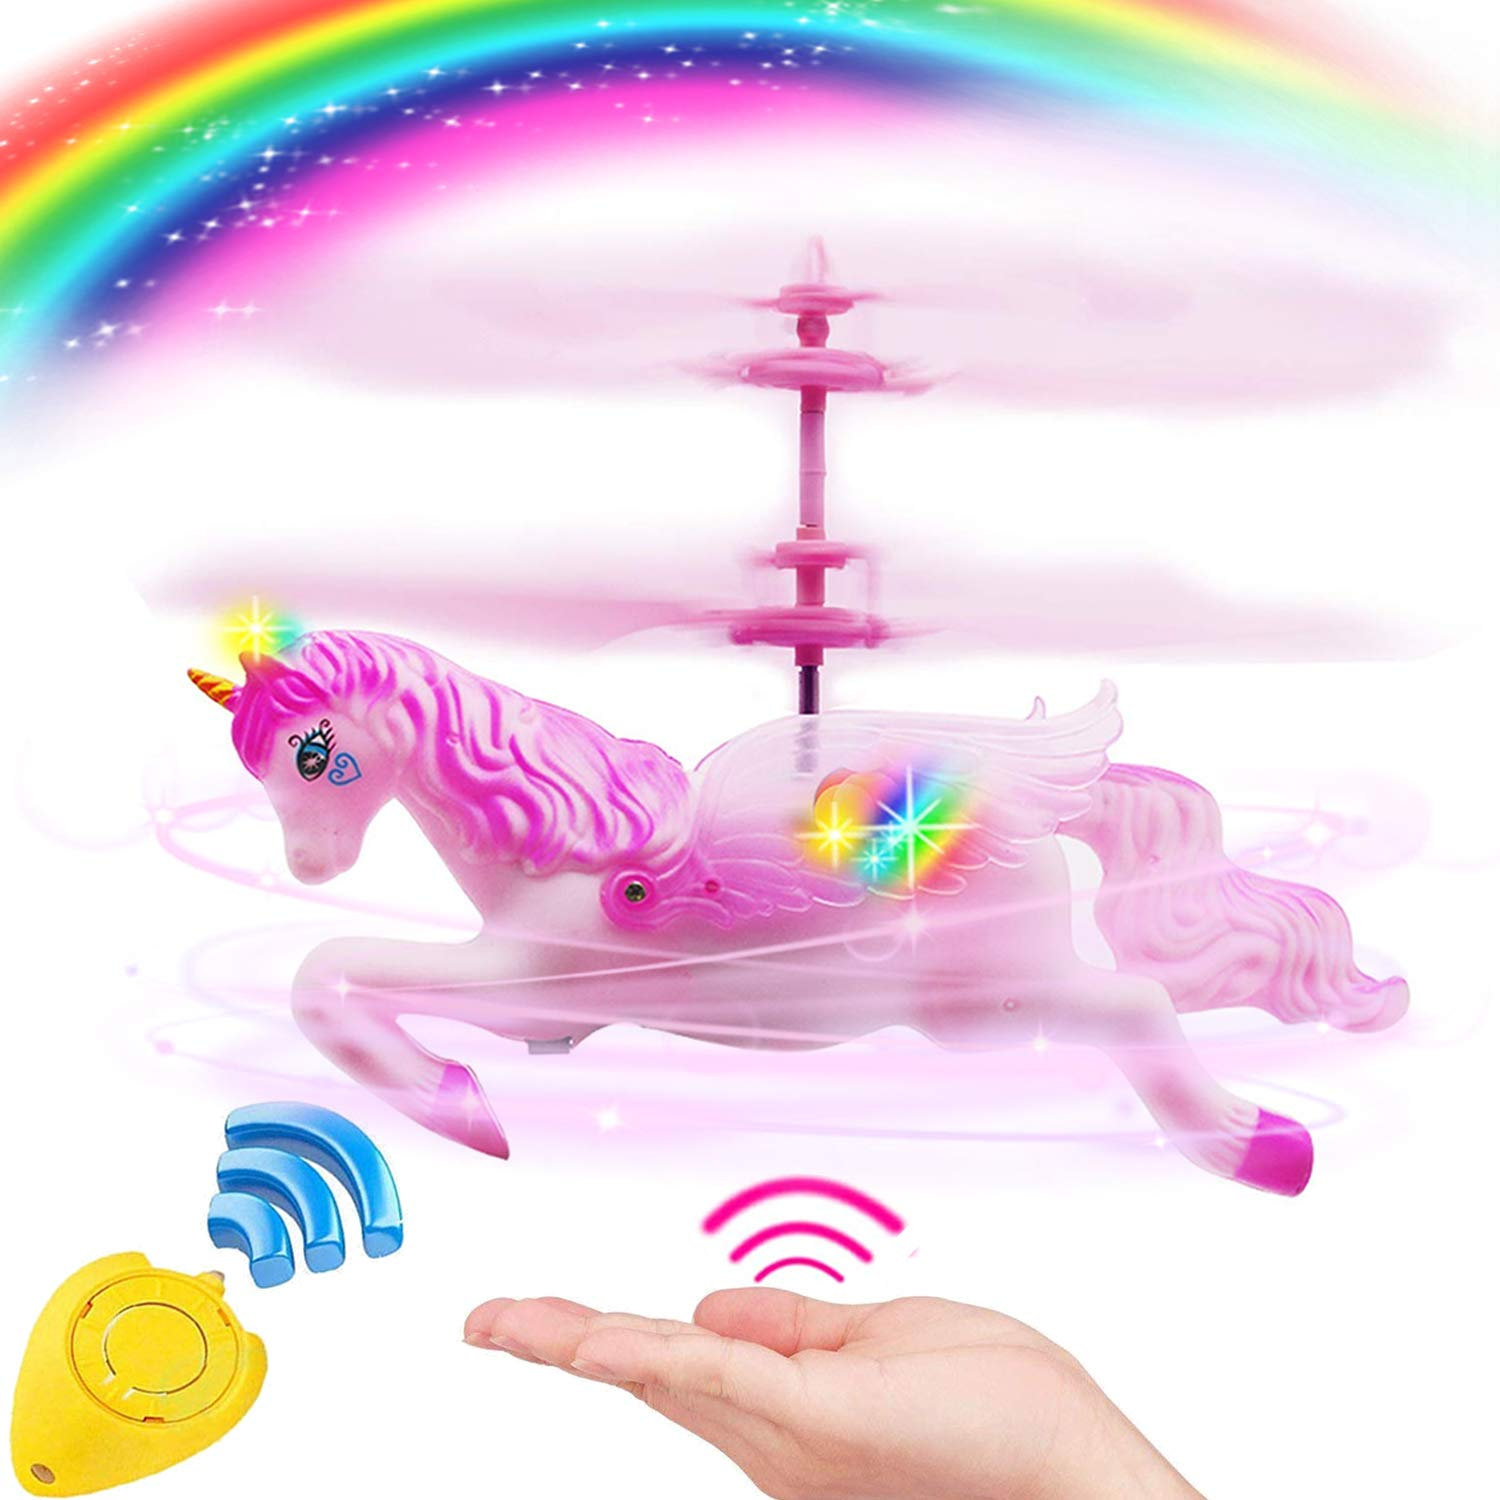 Flying Ball RC Unicorn Toys, Mini RC Flying Helicopter Unicorn Toy Gifts Hand Control Drones for Kids Boys Girls Flying Fairy Unicorn Doll Hovering Aircraft Outdoor Flying Toys Games Birthday Gift